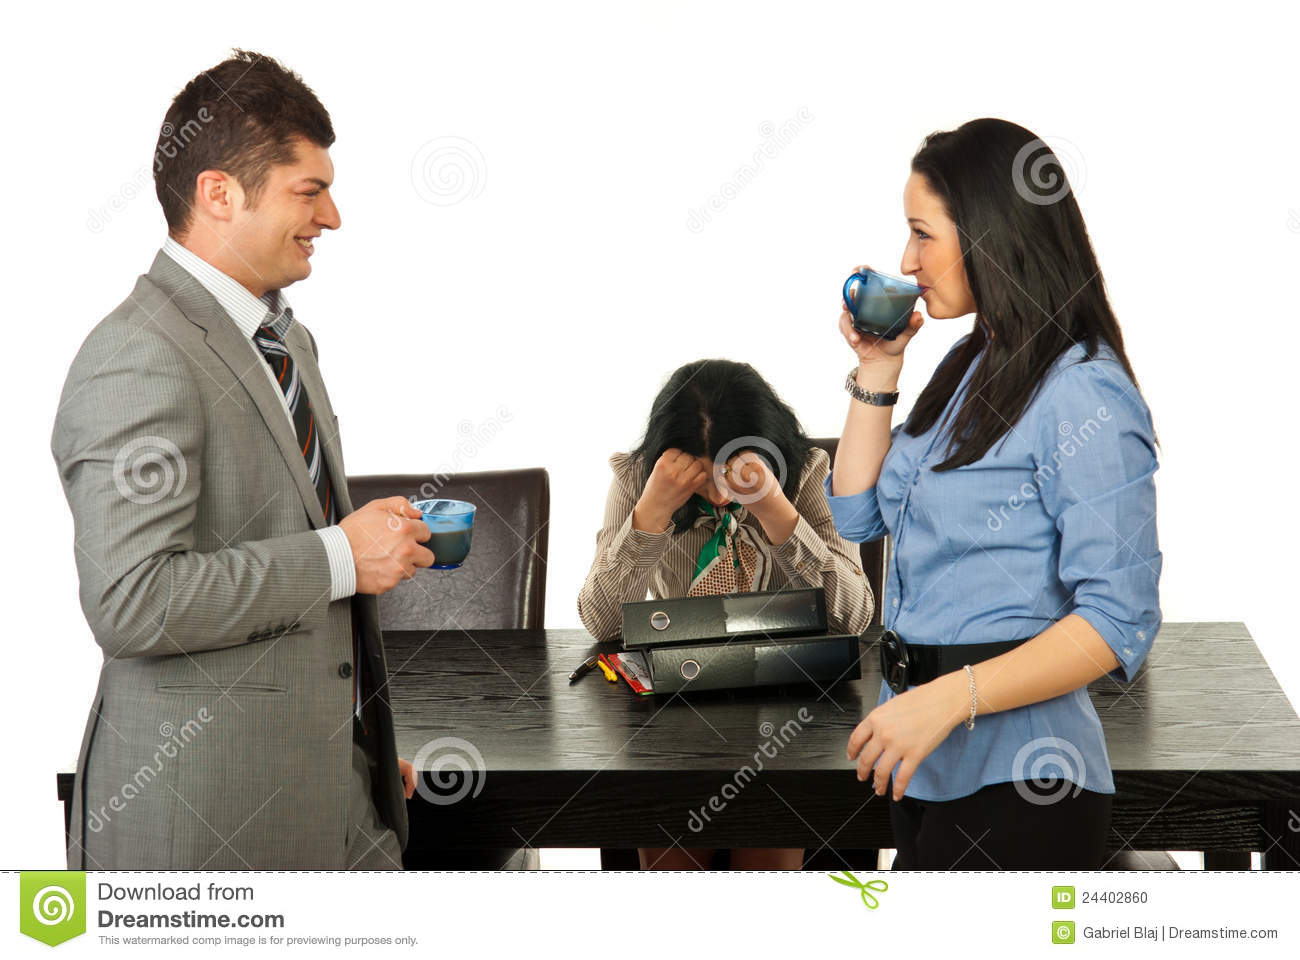 Coffee Break For Business People Stock Photo - Image: 24402860